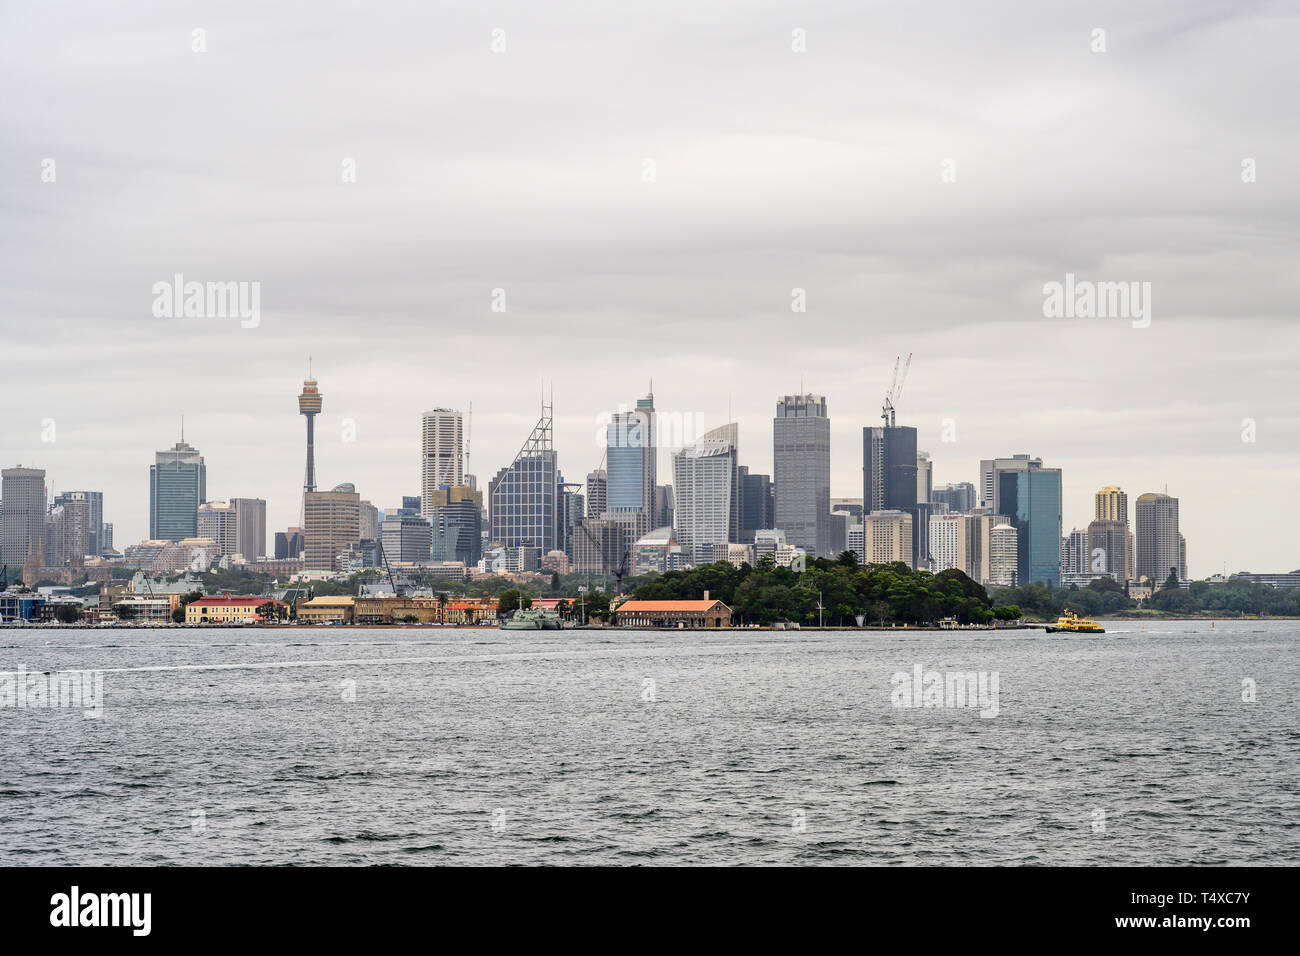 Sydney skyline seen from Sydney Harbour. - Stock Image